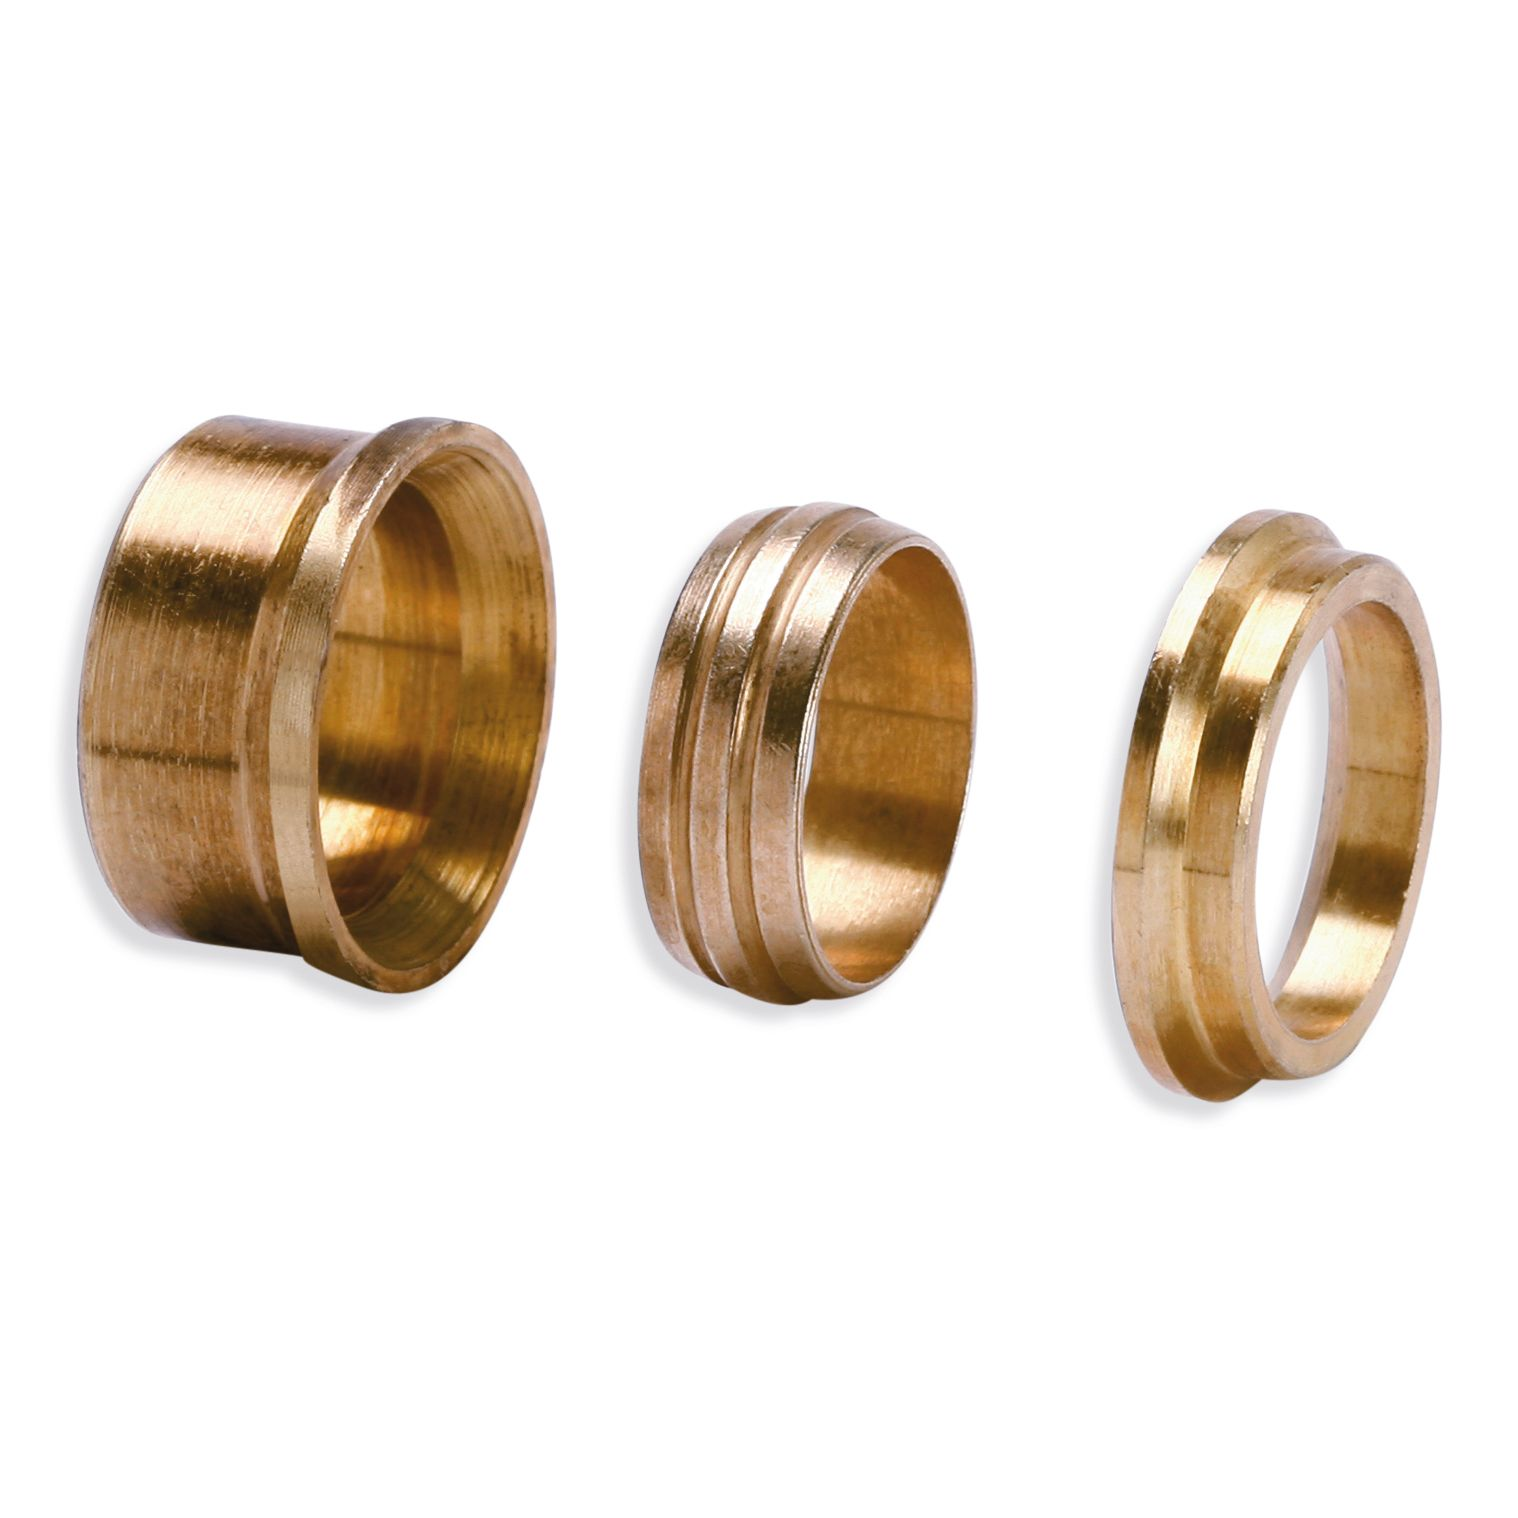 Product P168DR, DR THREE PIECE REDUCING SET